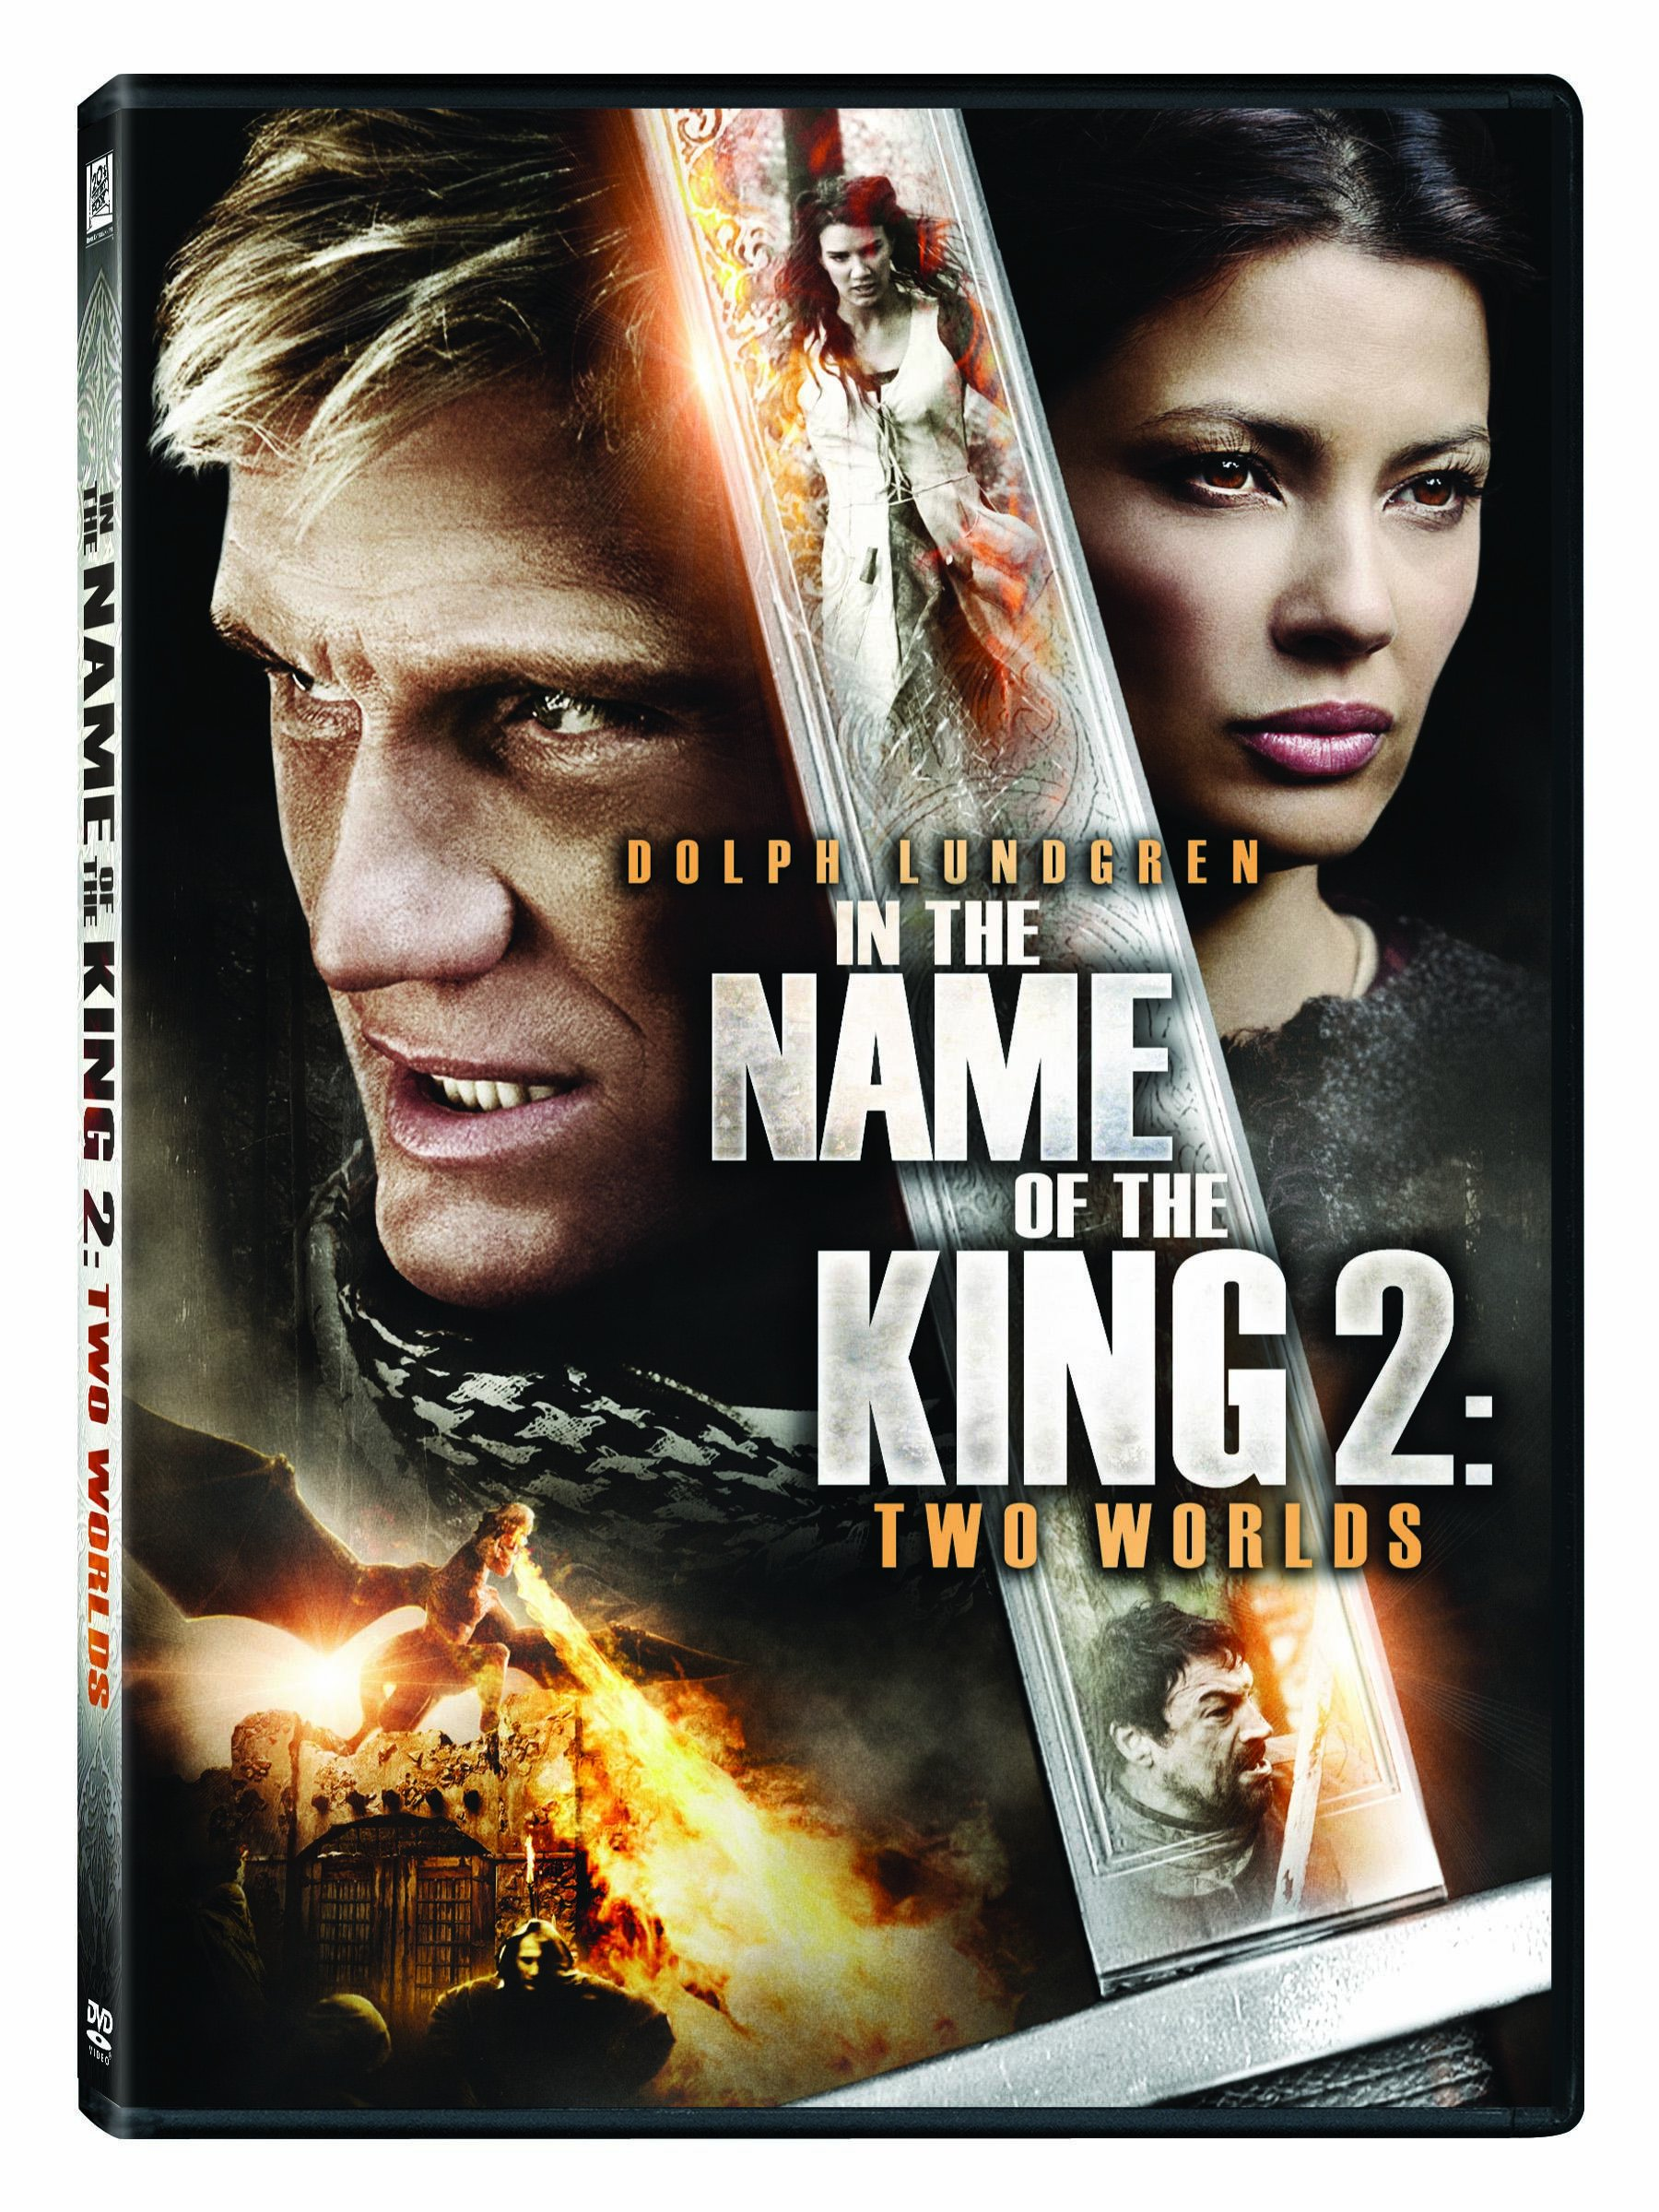 In The Name Of The King 2: Two Worlds [WS] (Dolby, AC-3, Subtitled, Widescreen)